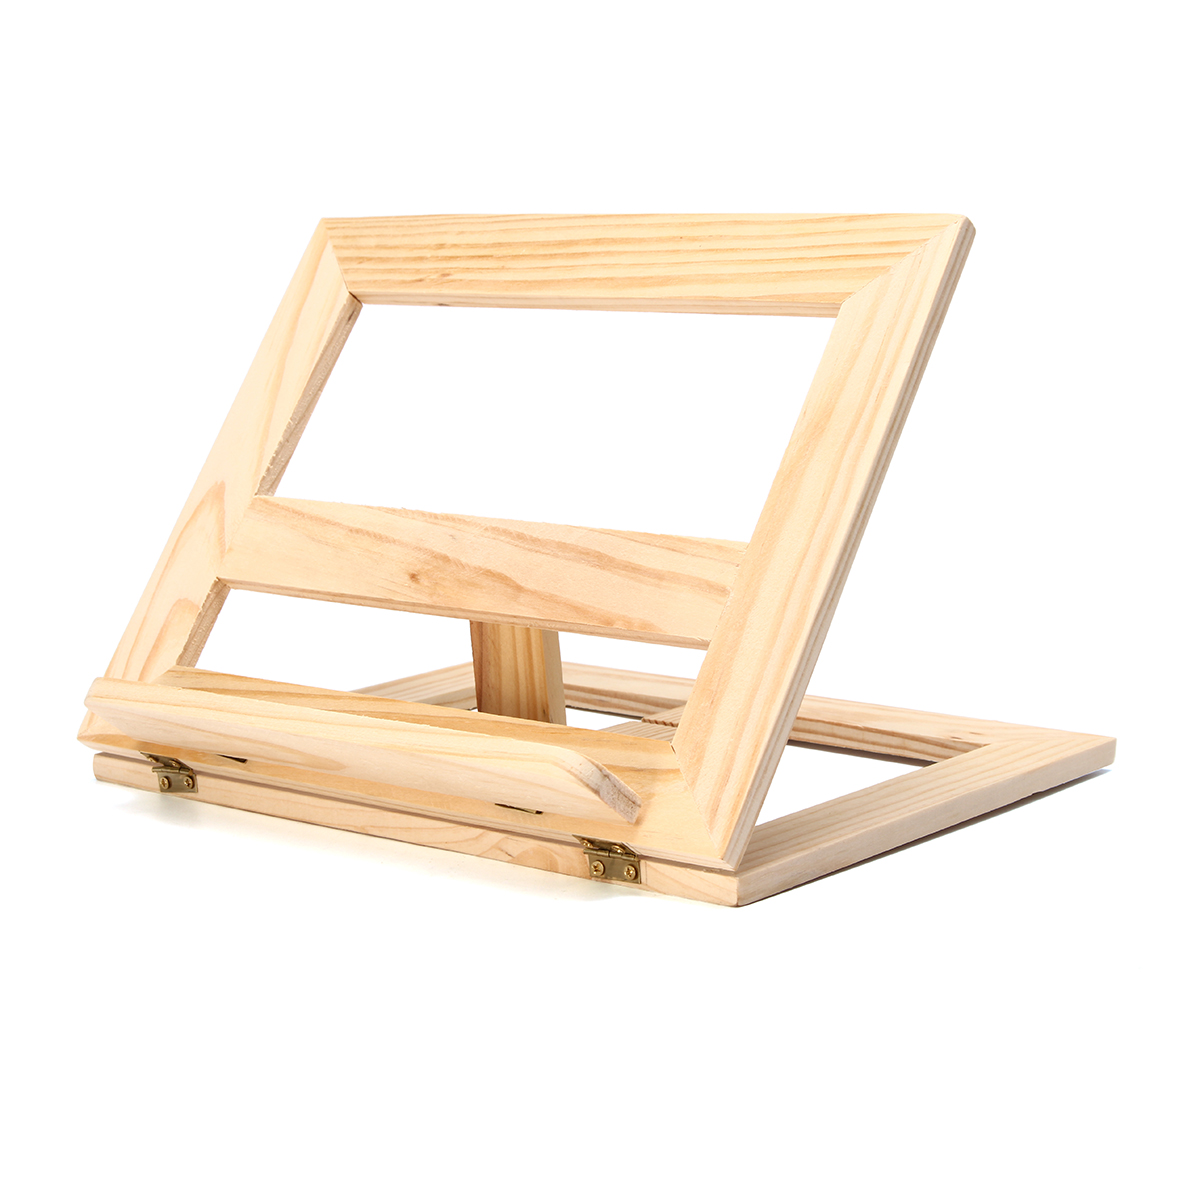 Durable Wooden Easel Foldable Display Stand Wooden Frame Reading ...